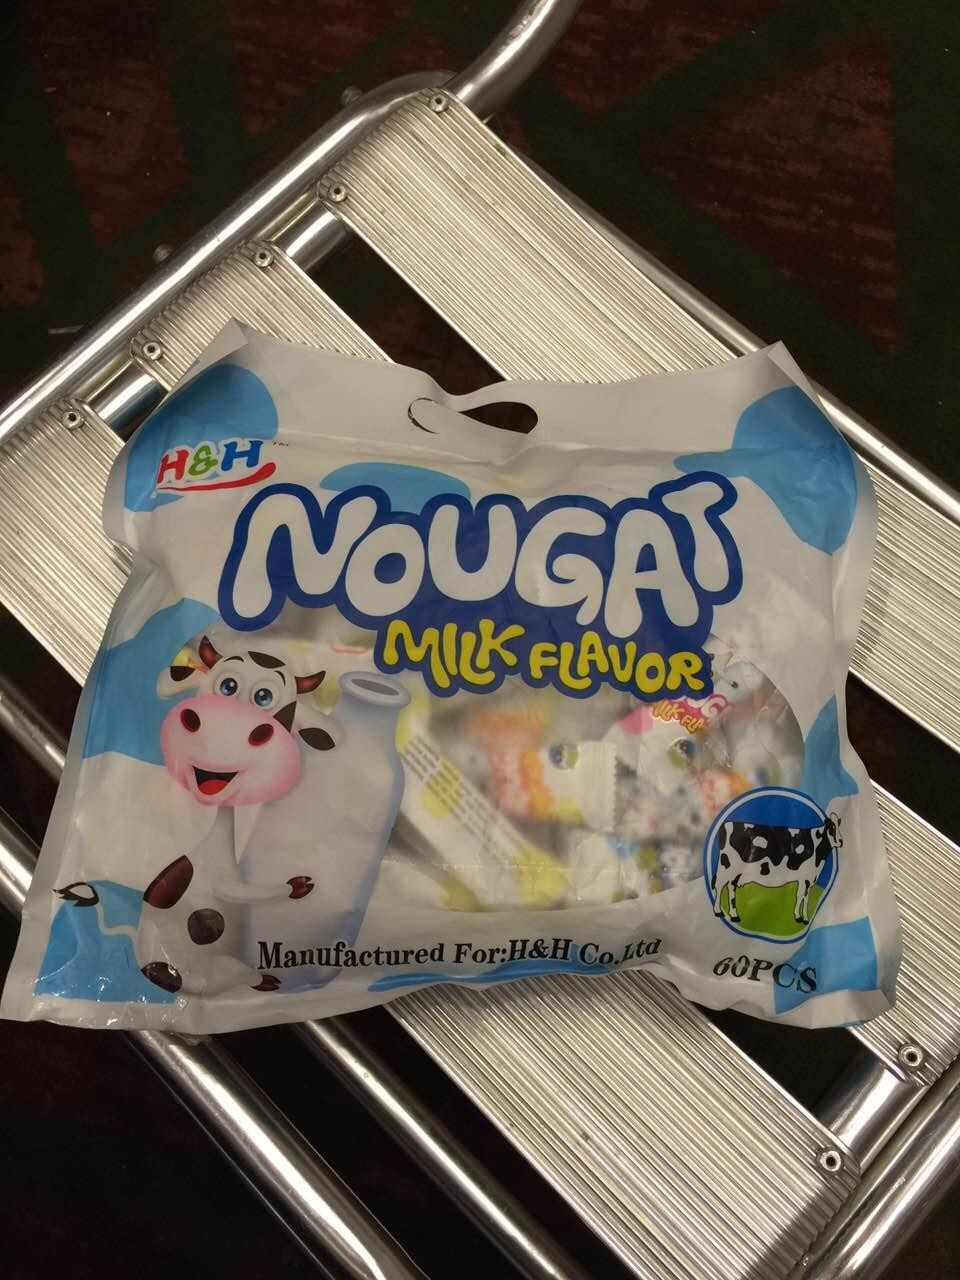 Delicious Nougat Candy Supplier